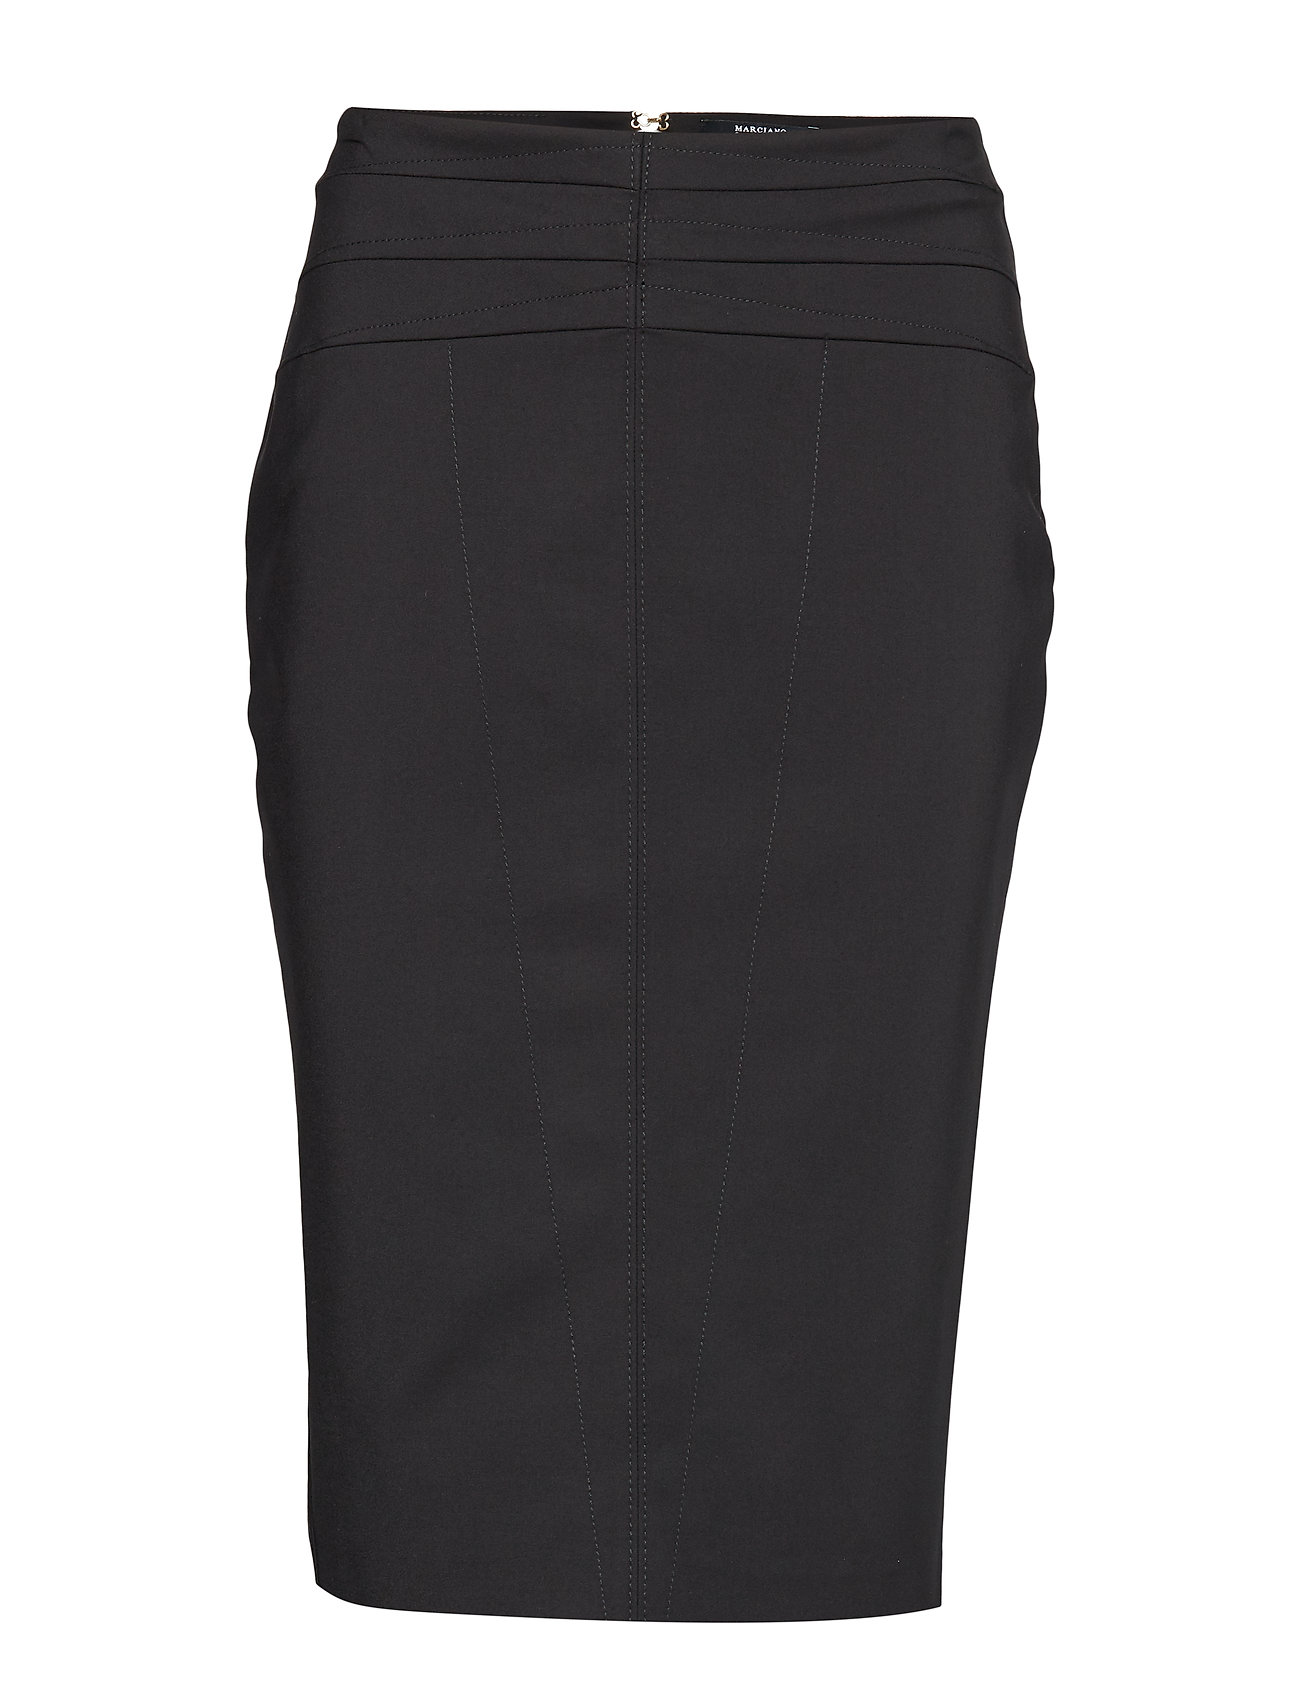 Marciano by GUESS ABEL SKIRT - JET BLACK A996